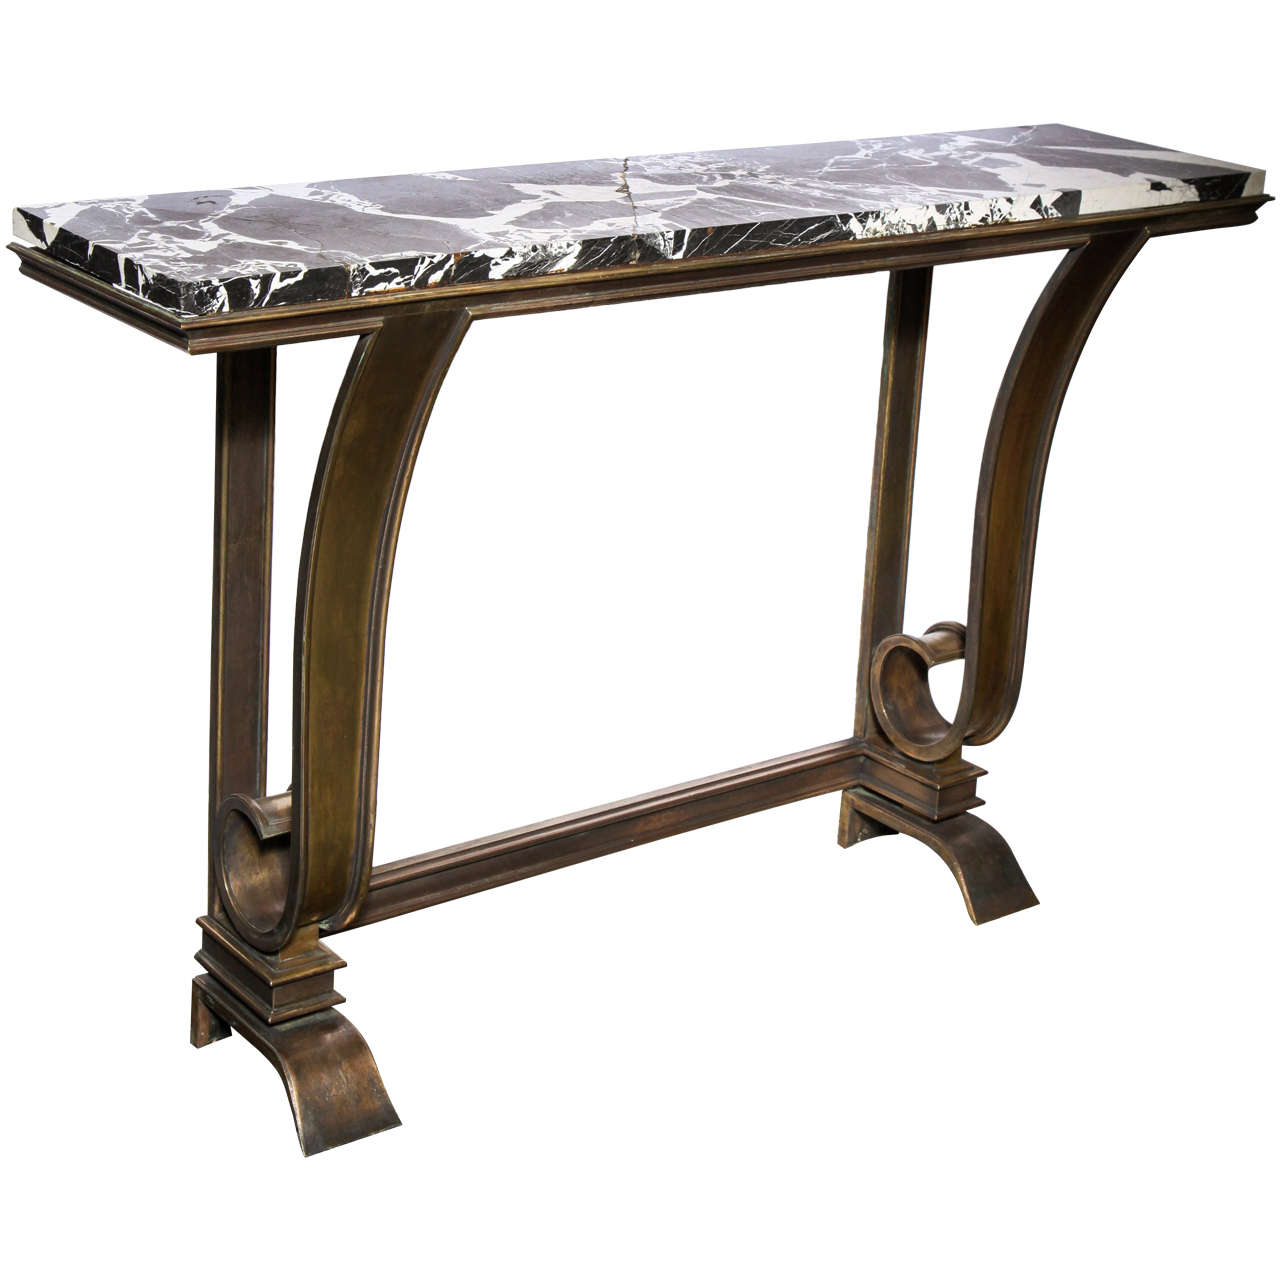 1930s french art deco nickel iron and marble console table at 1stdibs 1930s french art deco nickel iron and marble console table 1 geotapseo Image collections